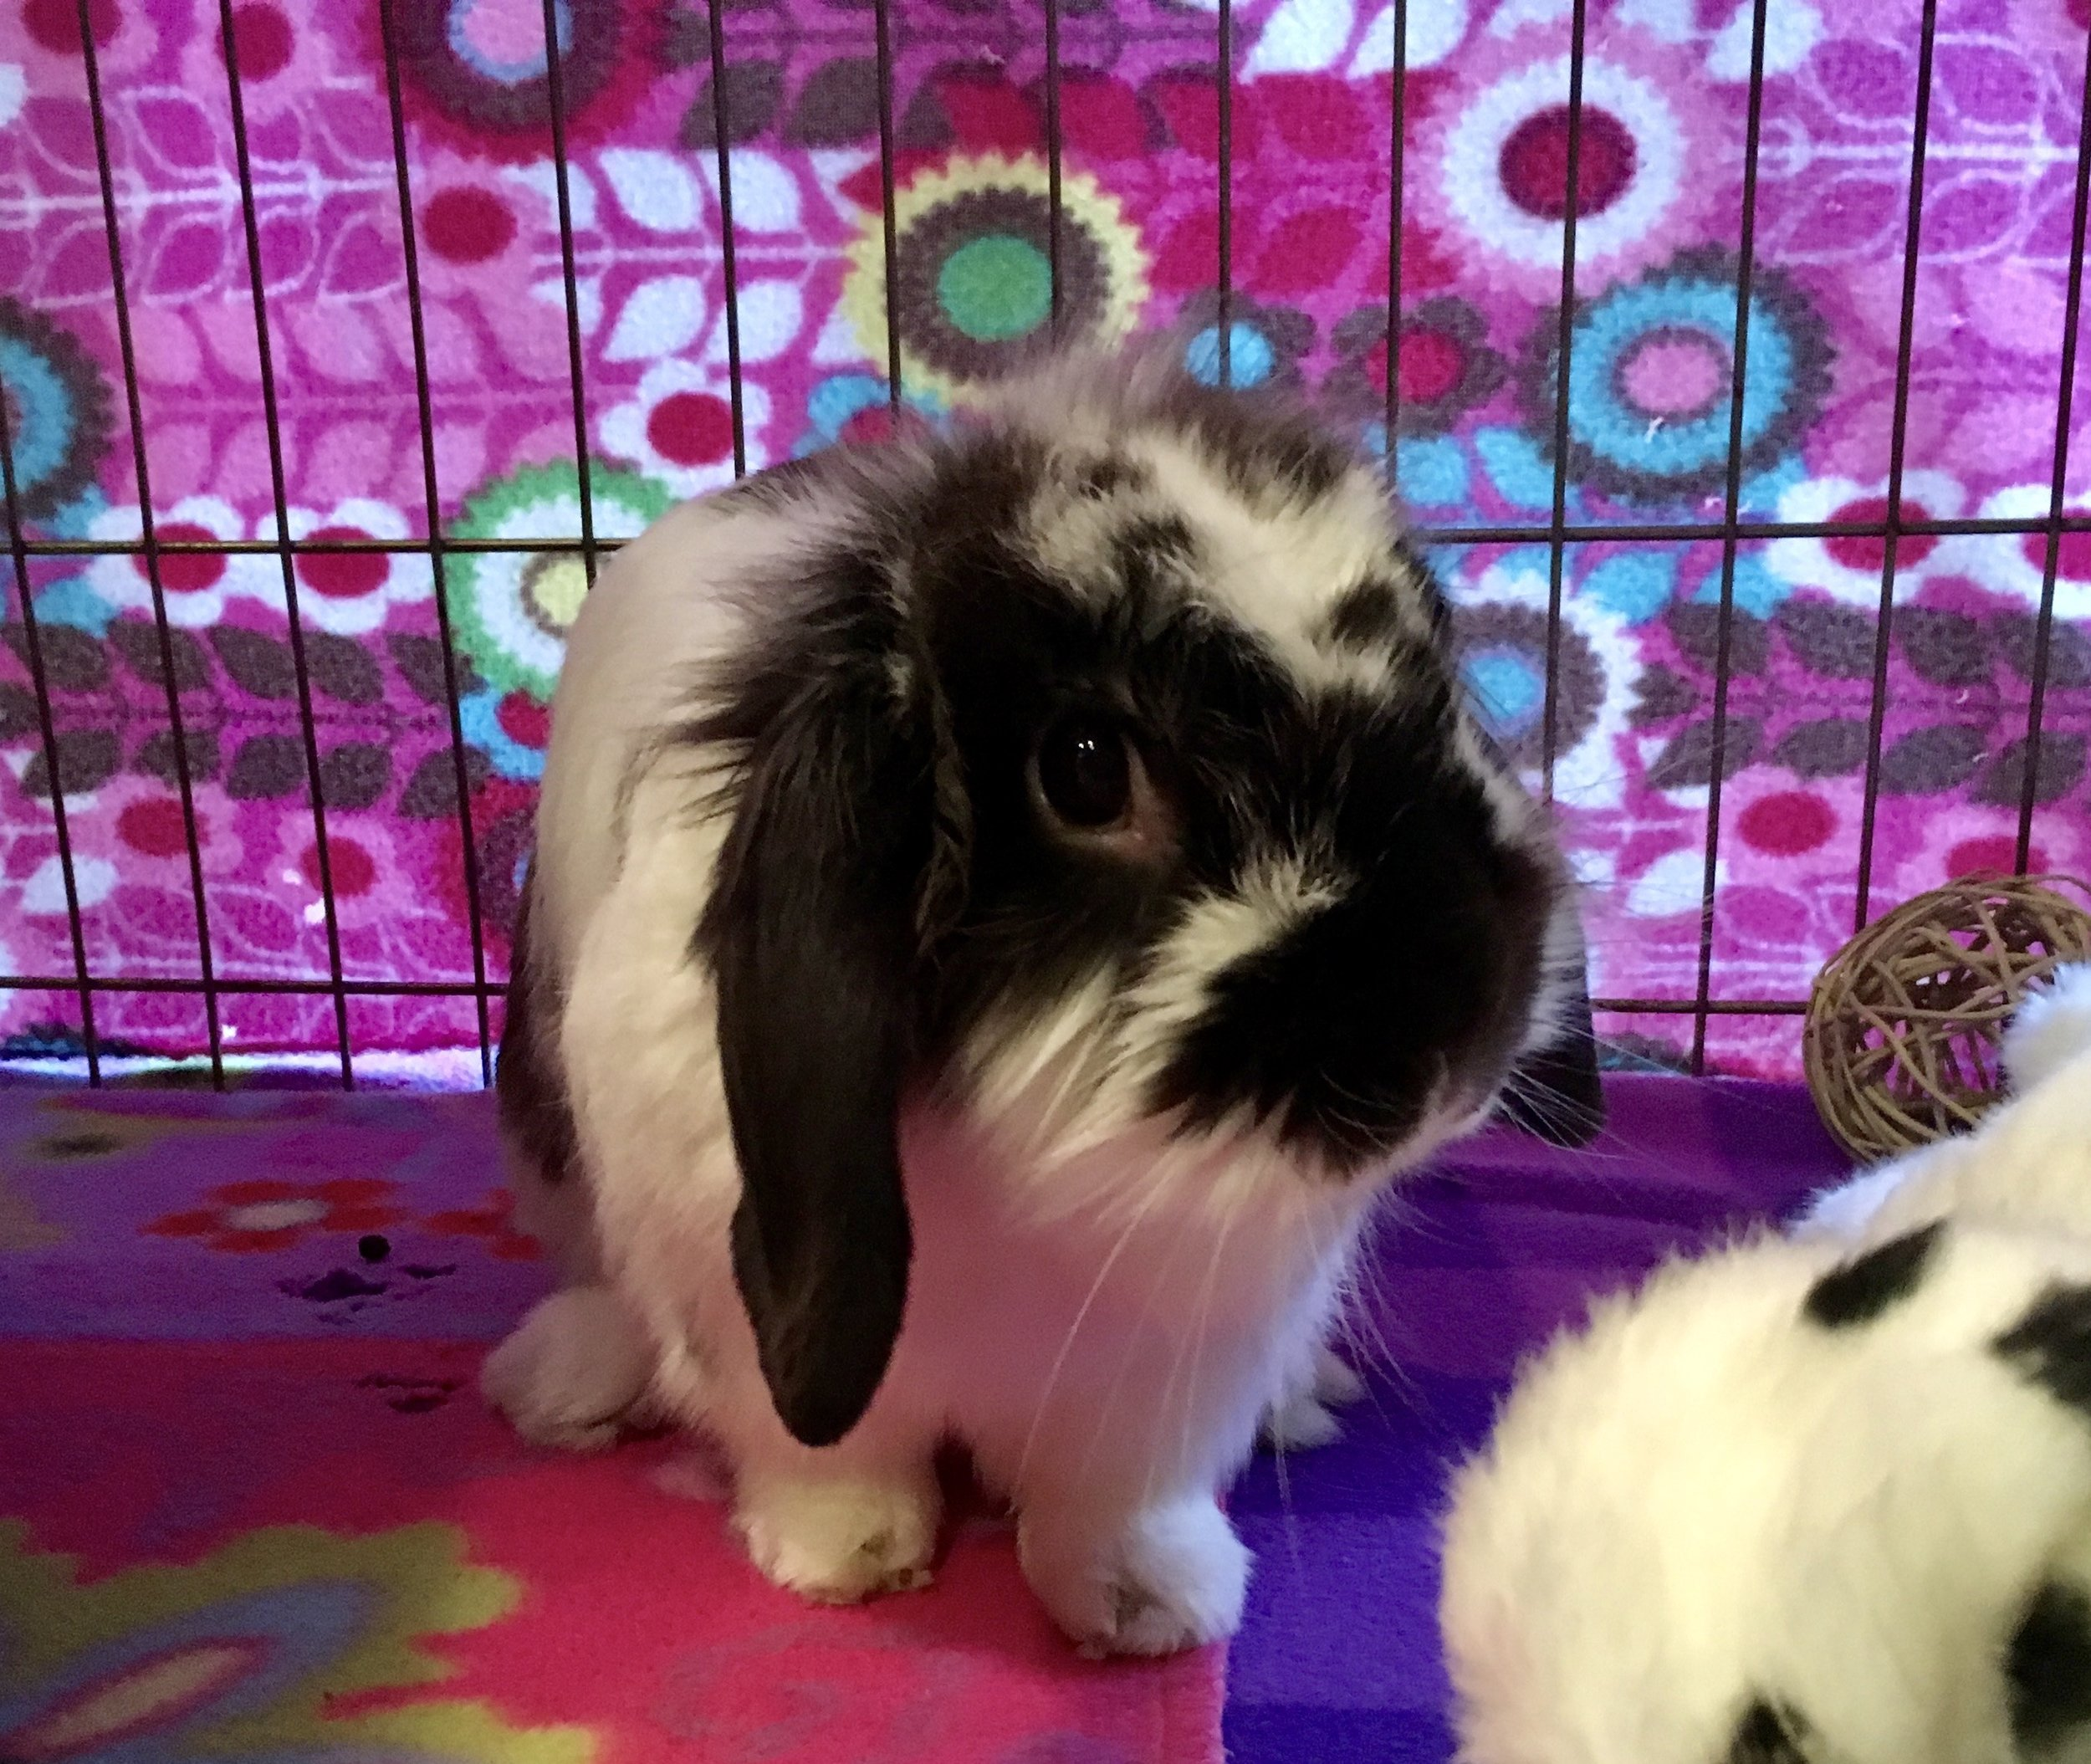 Checkers is a 3-year old lop eared bunny available for adoption at Triangle Rabbits